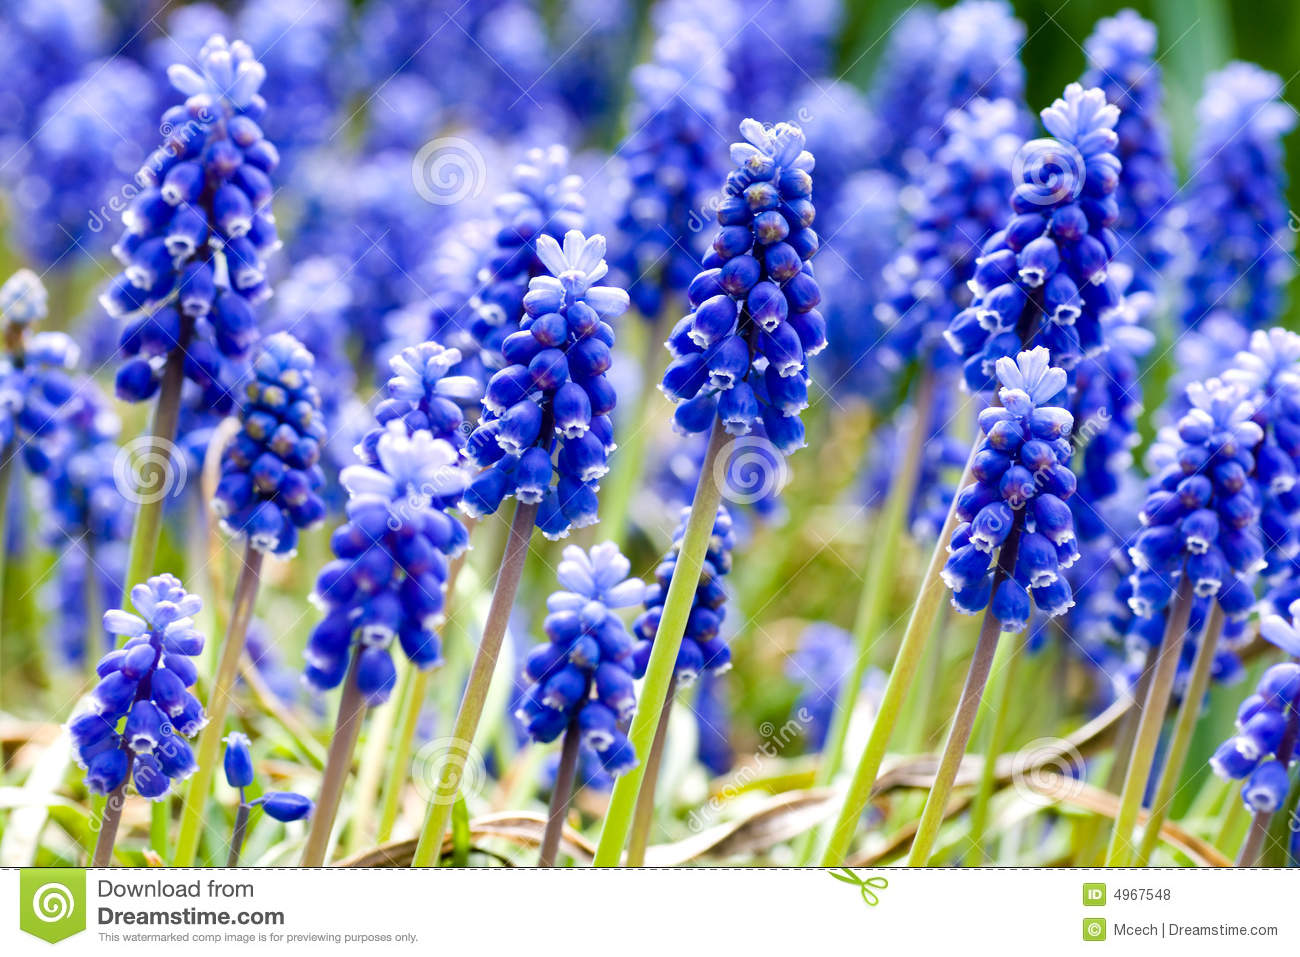 Spring flowers background royalty free stock photos image 4967548 background blue flowers spring dhlflorist Choice Image